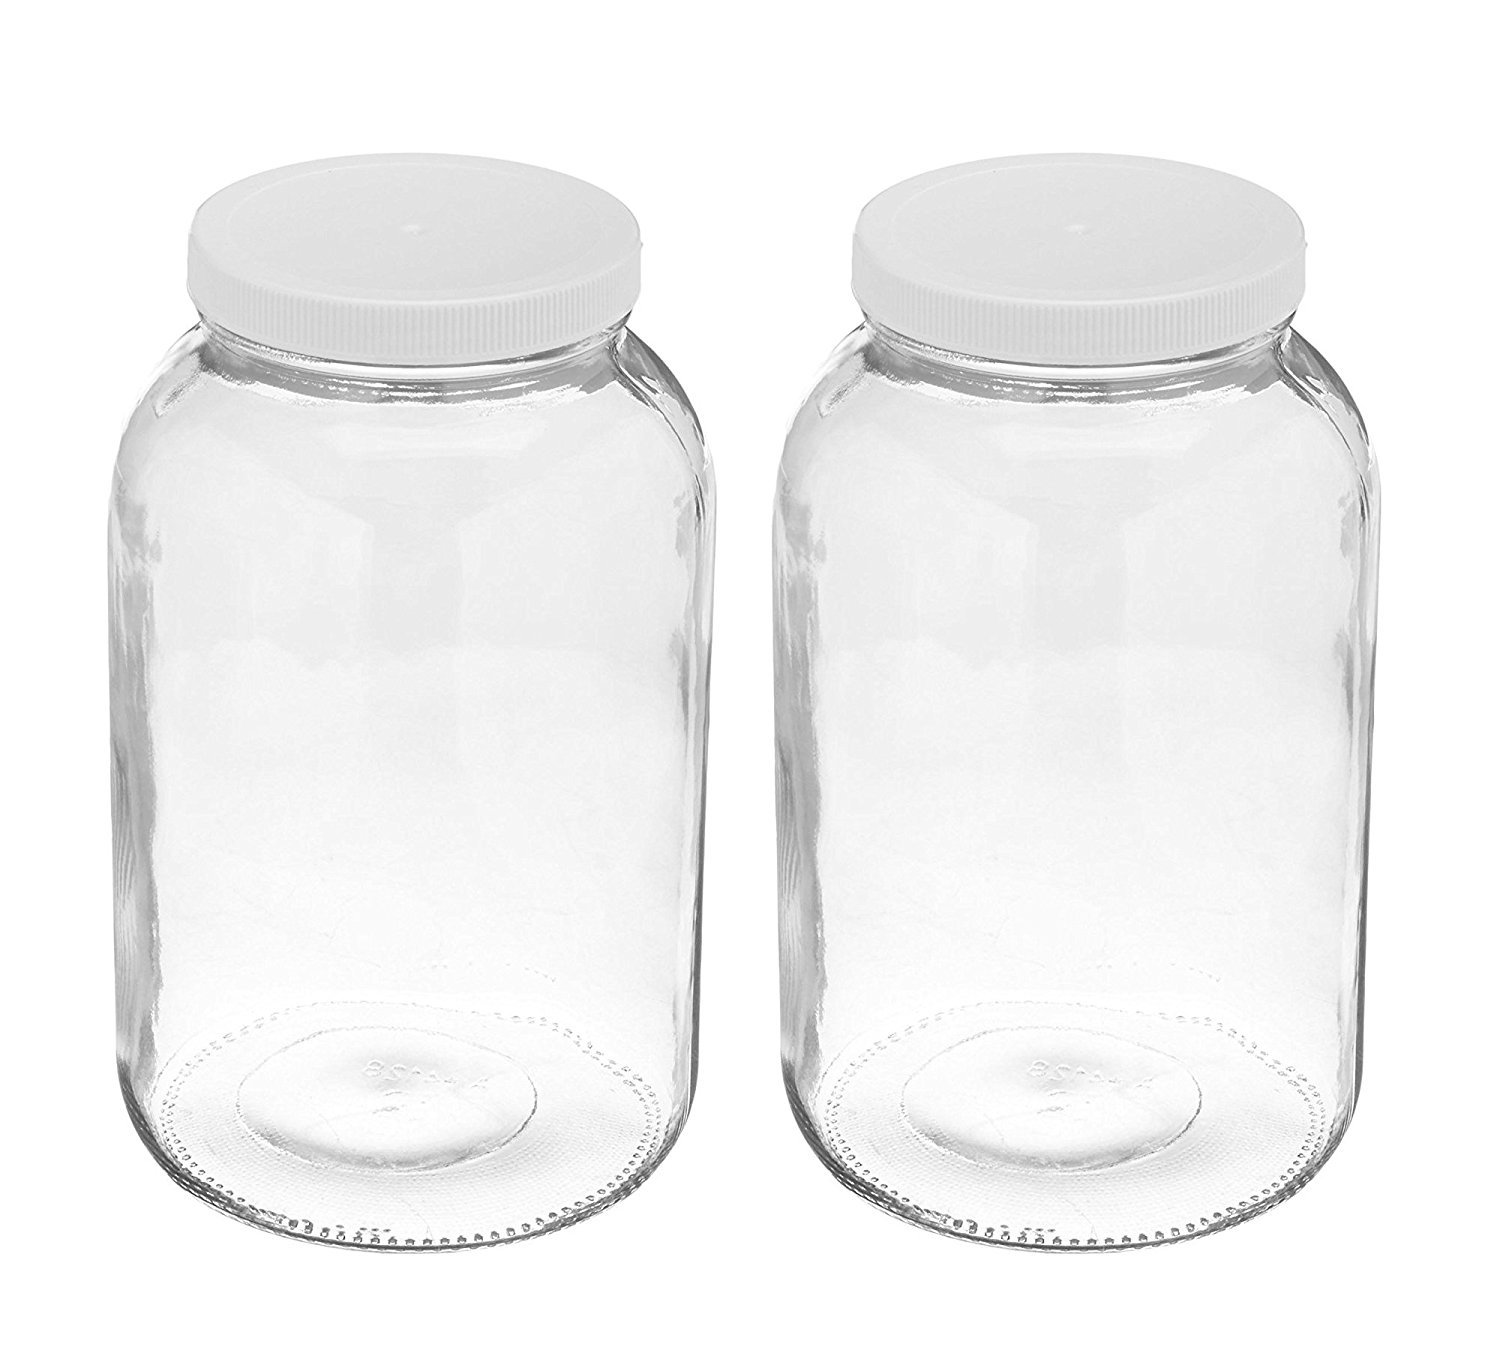 2 Pack ~ Wide Mouth 1 Gallon Clear Glass Jar - White Lid with Liner Seal for Fermenting Kombucha / Storing and Canning / USDA Approved, Dishwasher Safe